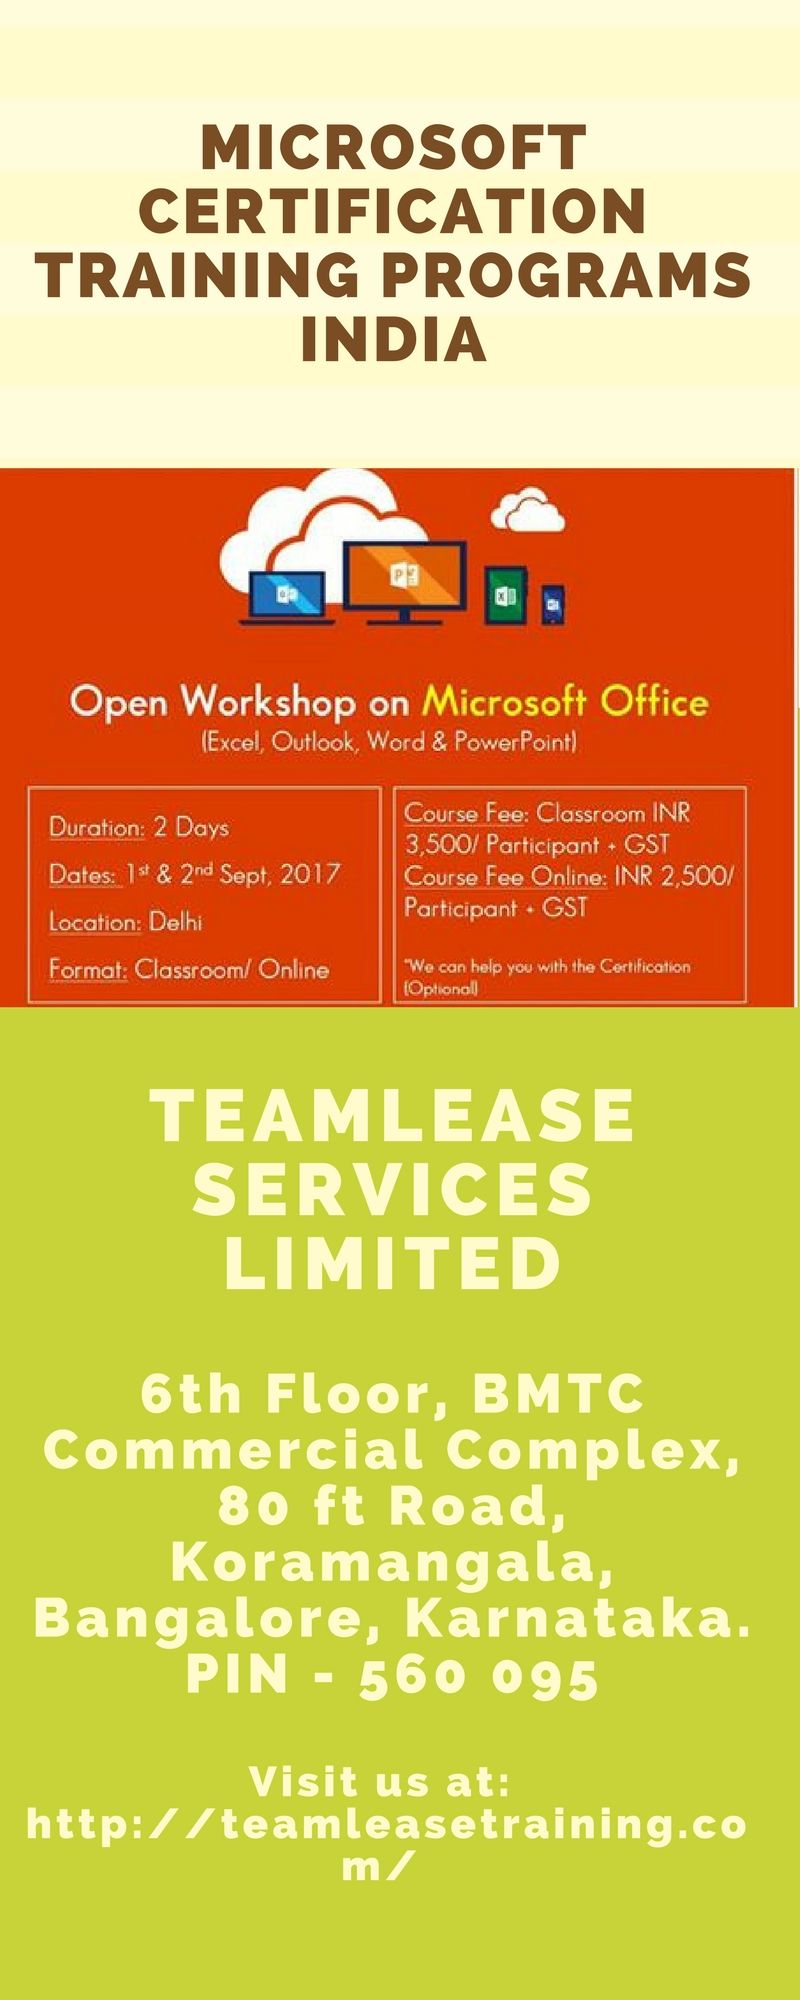 Pin by teamleasetraining on microsoft certification training training programs microsoft programming india xflitez Images